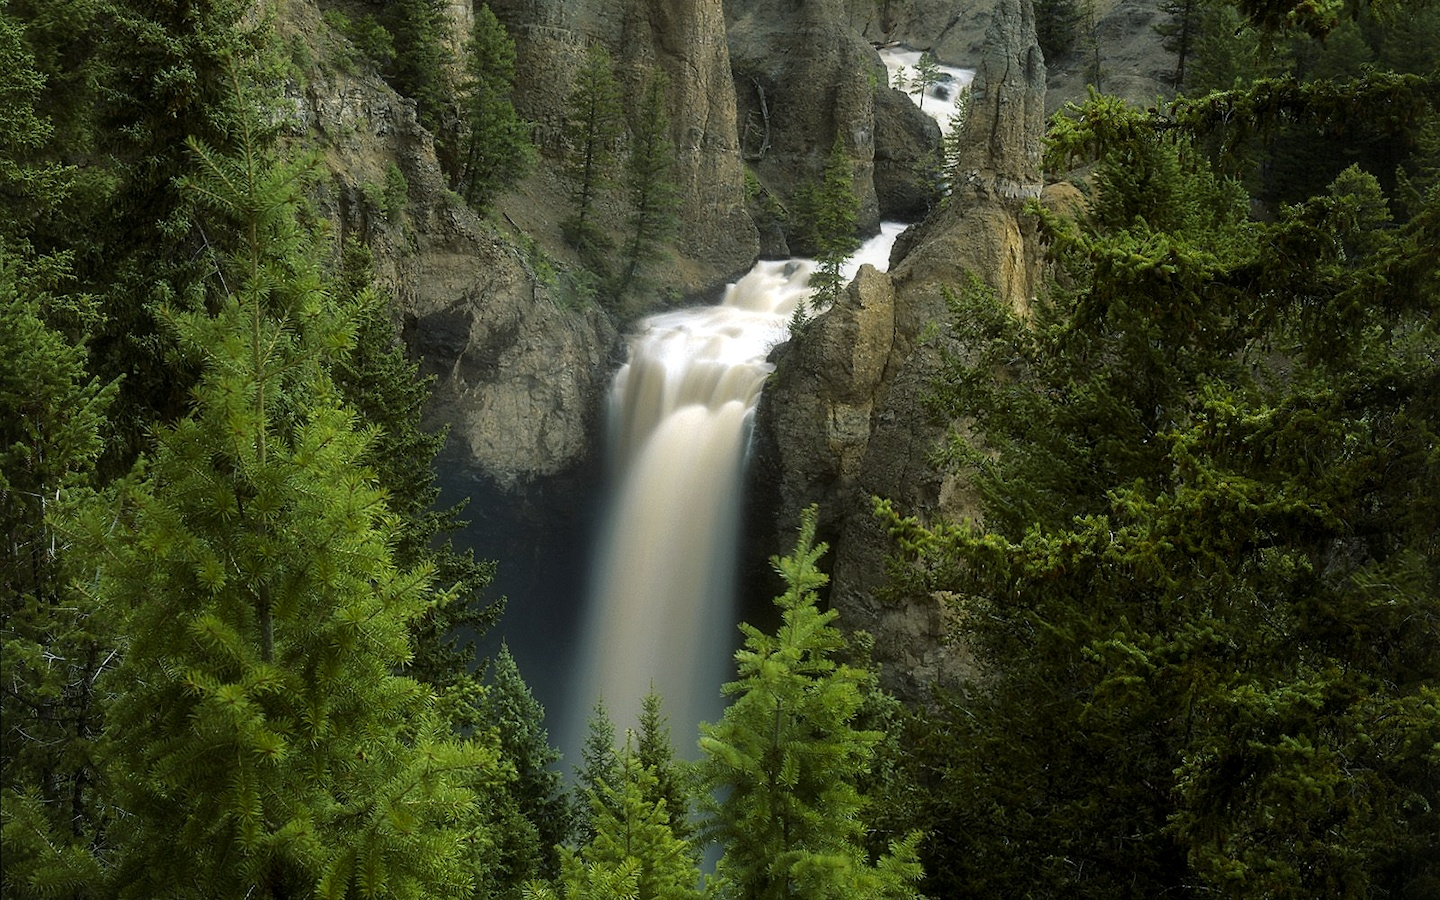 fantastic river falls widescreen new images free download